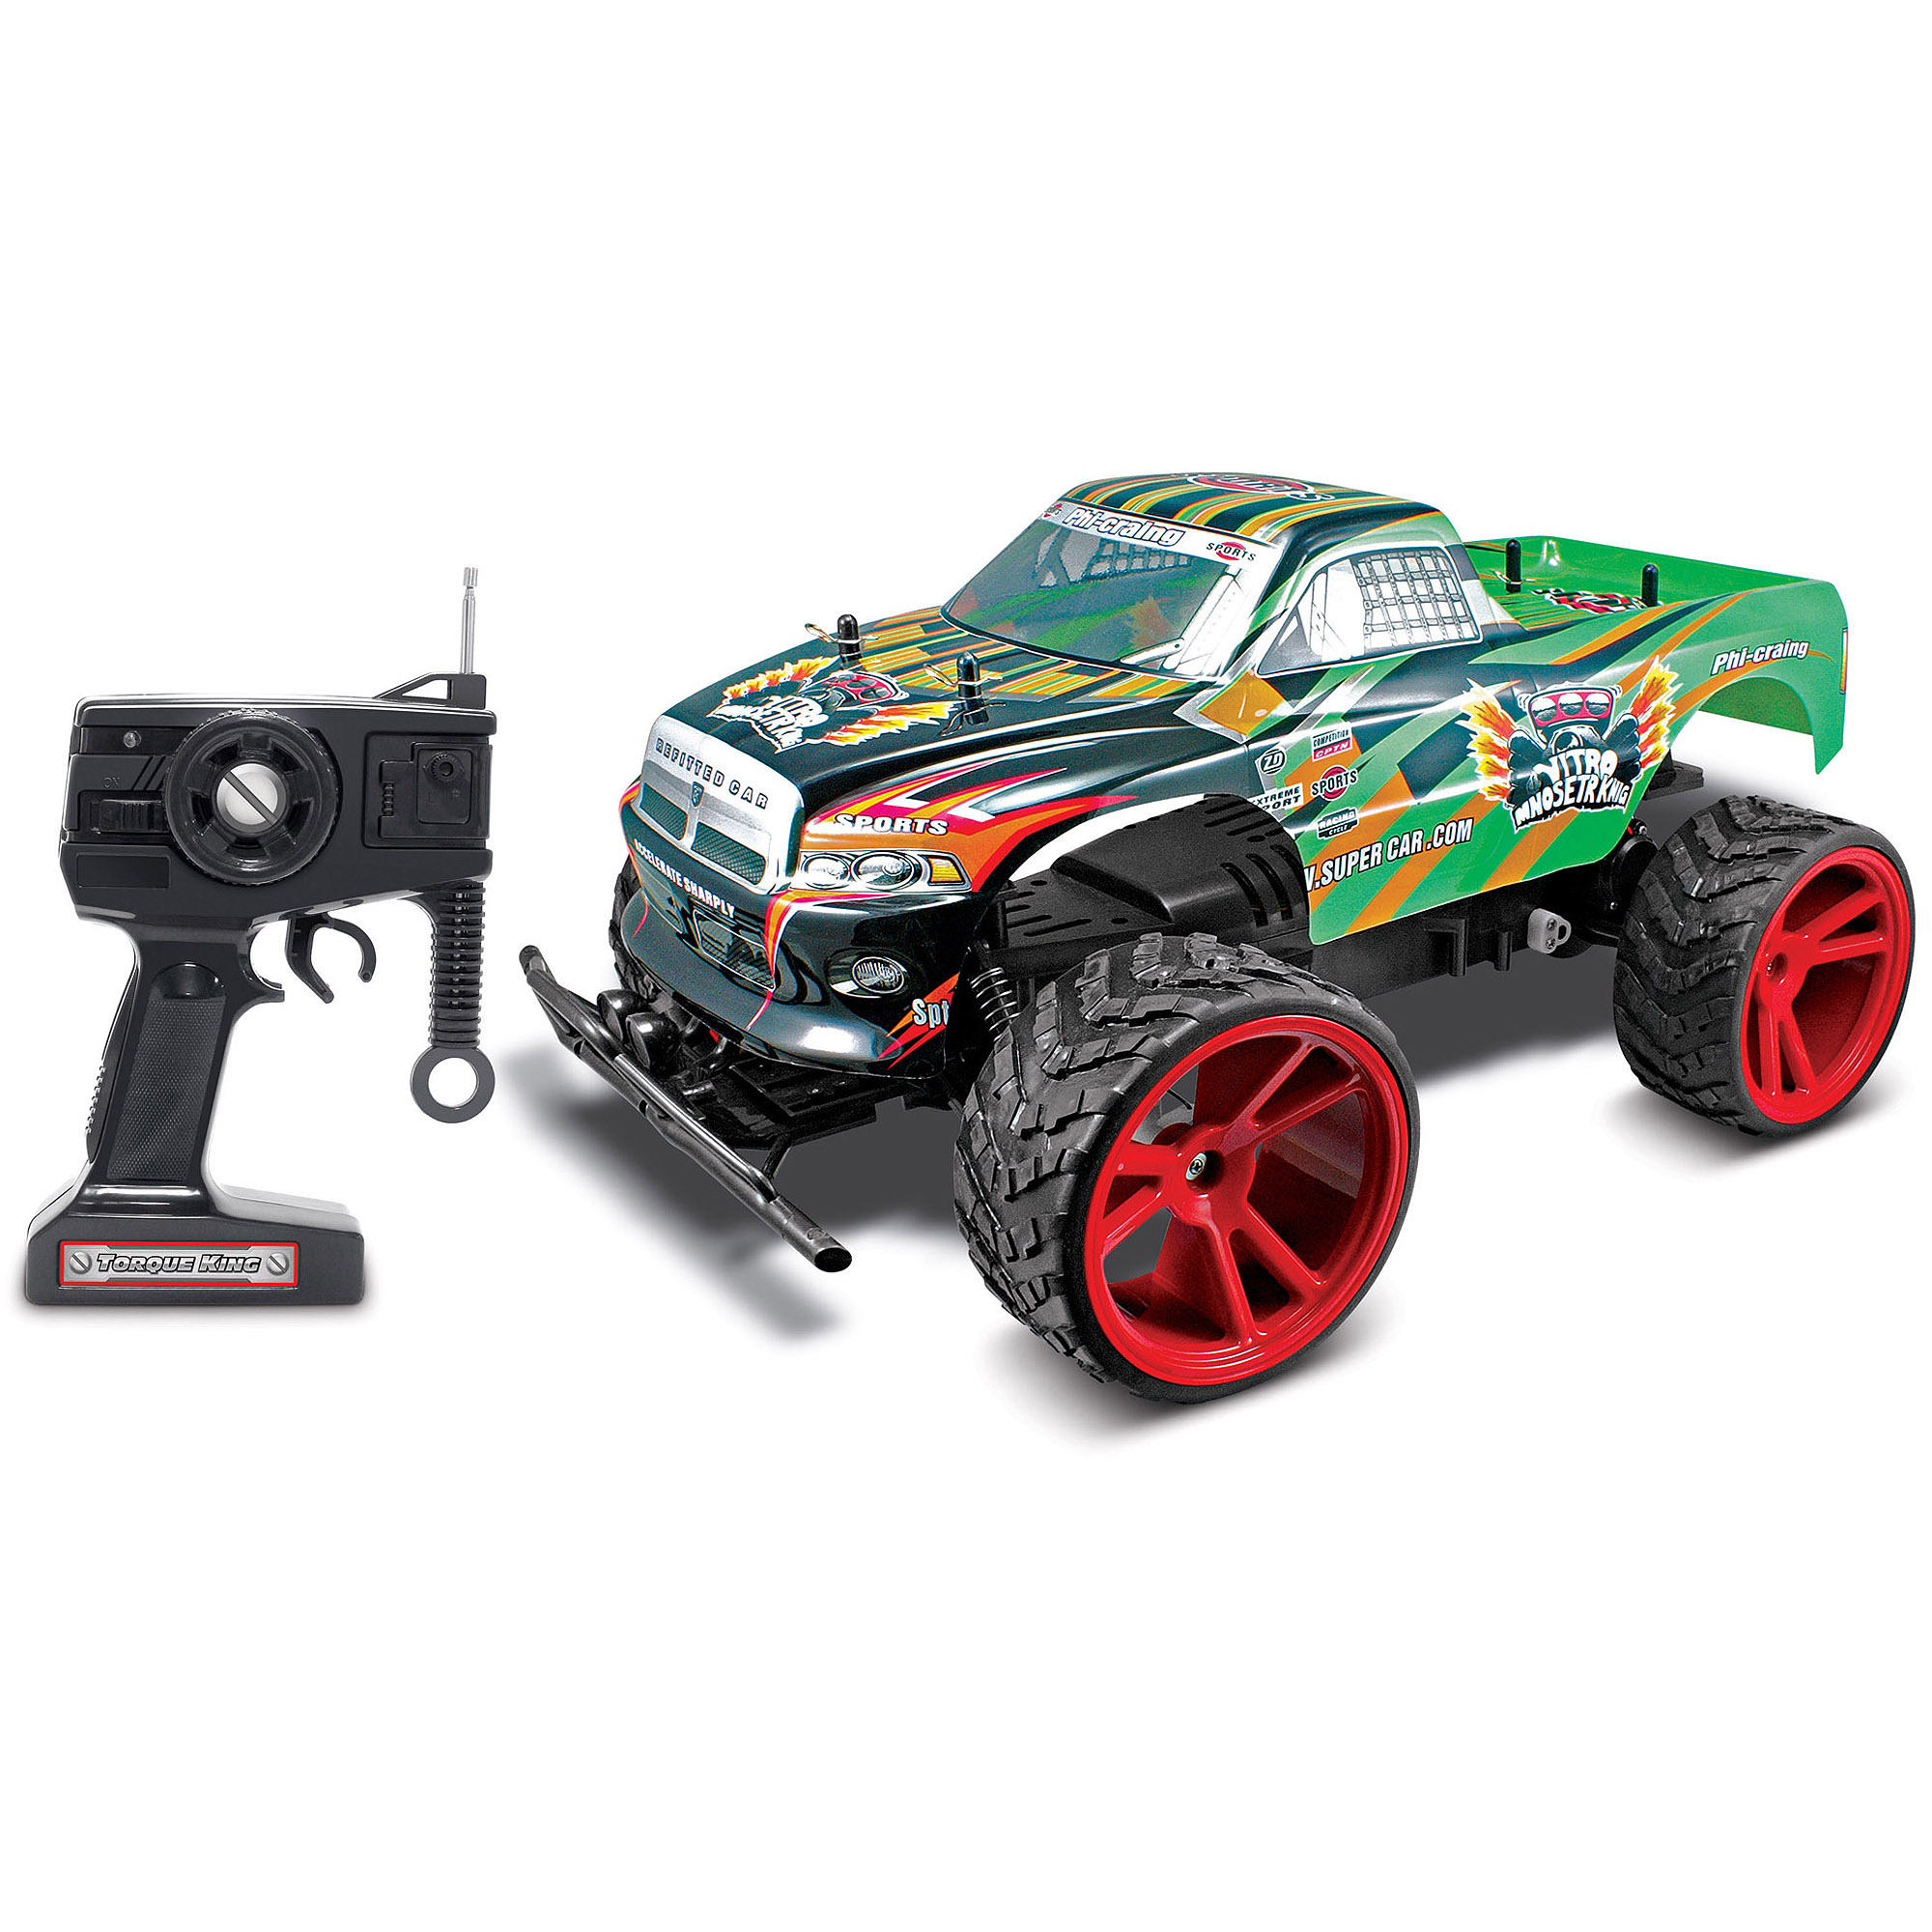 World Tech Toys Torque King 1:10 RC Monster Truck